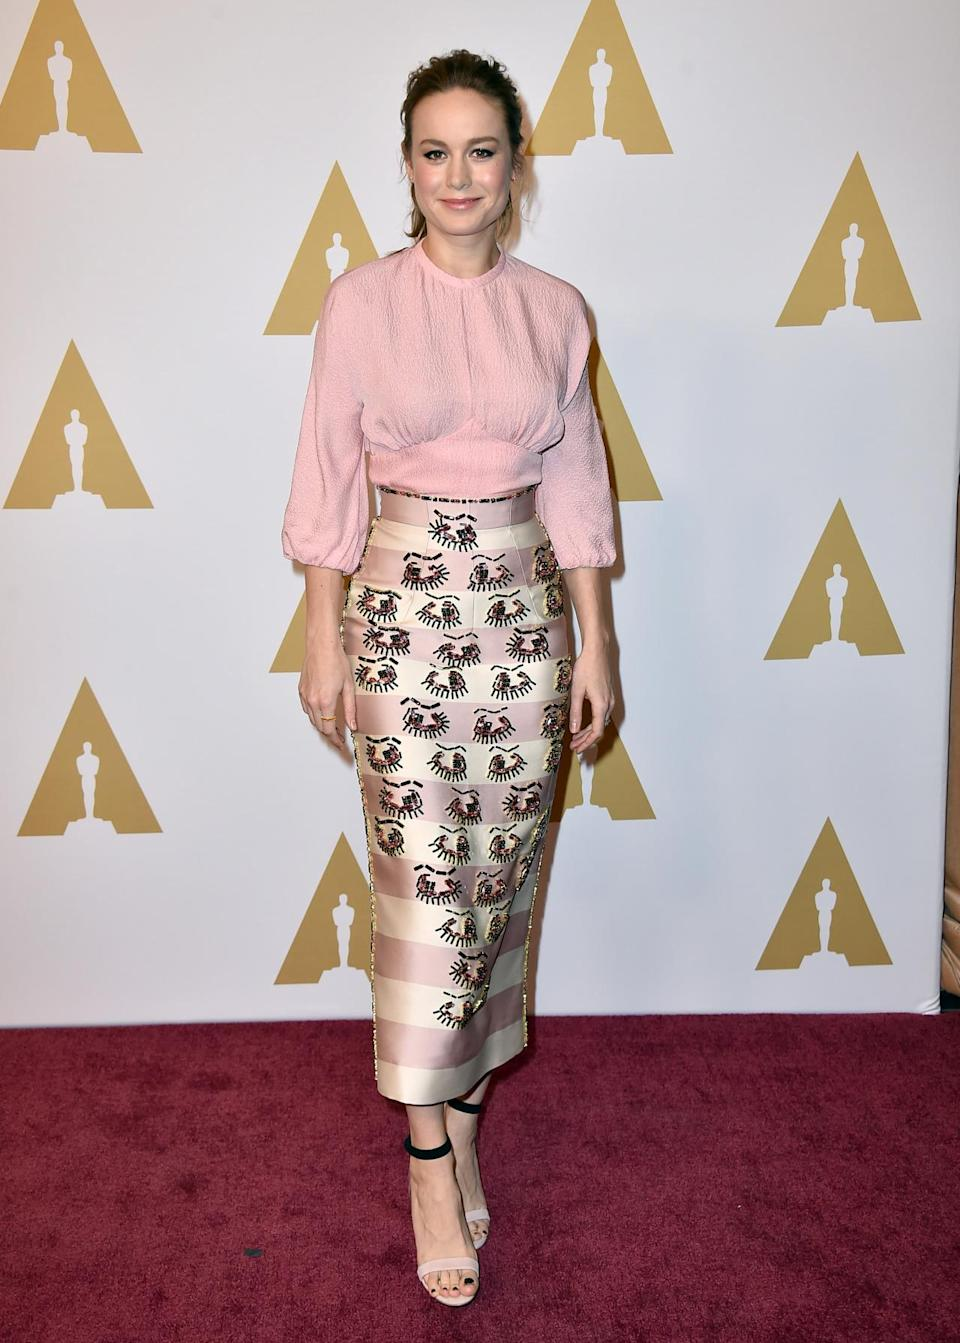 """<p>Brie Larson, who's nominated for her first Oscar in the best actress category, was very fashion-forward at her first nominees luncheon wearing a pink and white striped skirt with a flouncy blouse. While she looked beautiful, others wanted to know about Jacob Tremblay's sexy parent. """"Hot dad is here just so everyone is aware,"""" she said. """"It's been going on quietly for a while and it's really amazing how the Internet has finally caught on almost a year later."""" <i>Photo: AP</i></p>"""